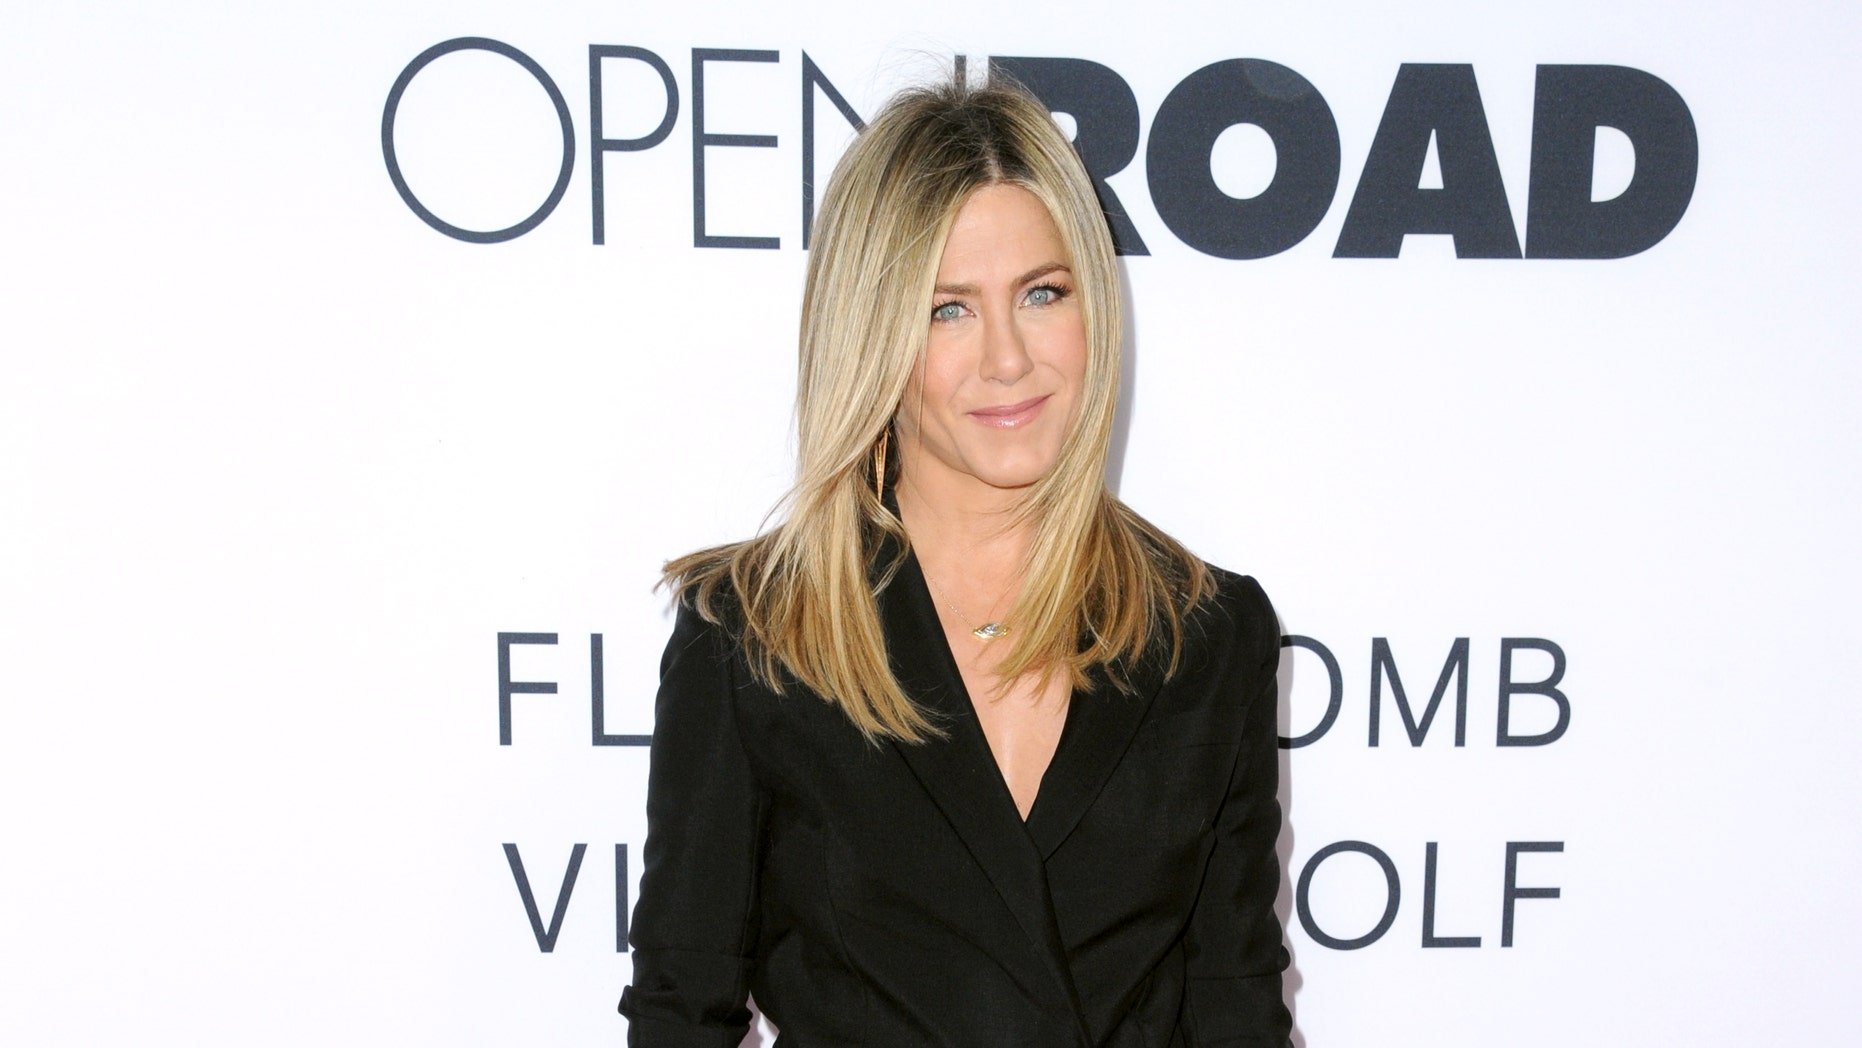 """Jennifer Aniston arrives at the Los Angeles premiere of """"Mother's Day"""" at the TCL Chinese Theatre on Wednesday, April 13, 2016. (Photo by Richard Shotwell/Invision/AP)"""